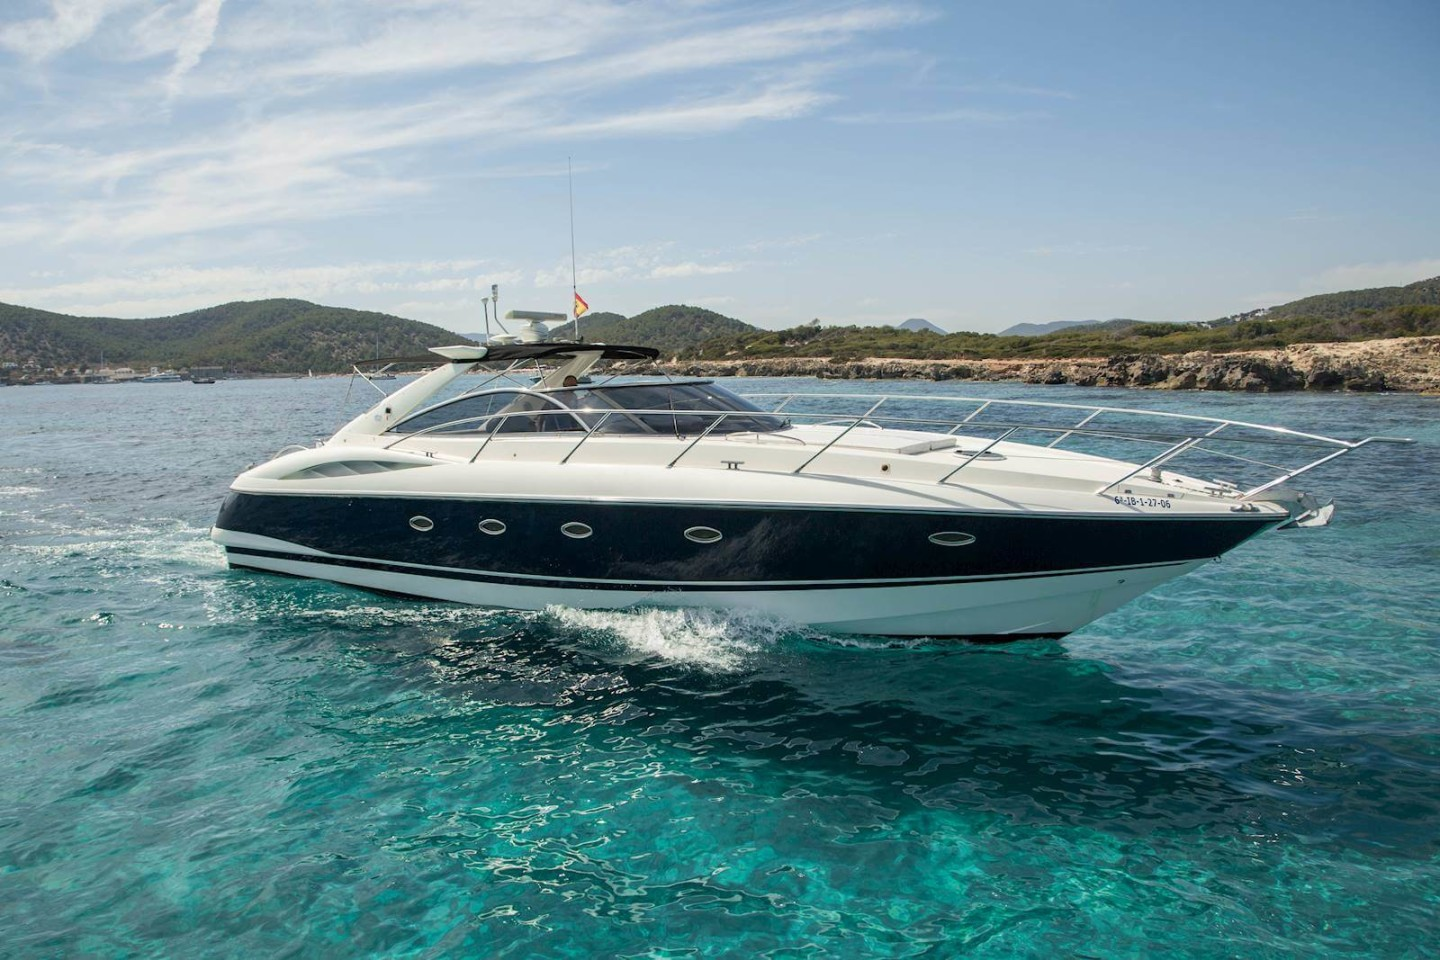 sail croatia luxury yacht charter dubrovnil boats paddle surfing